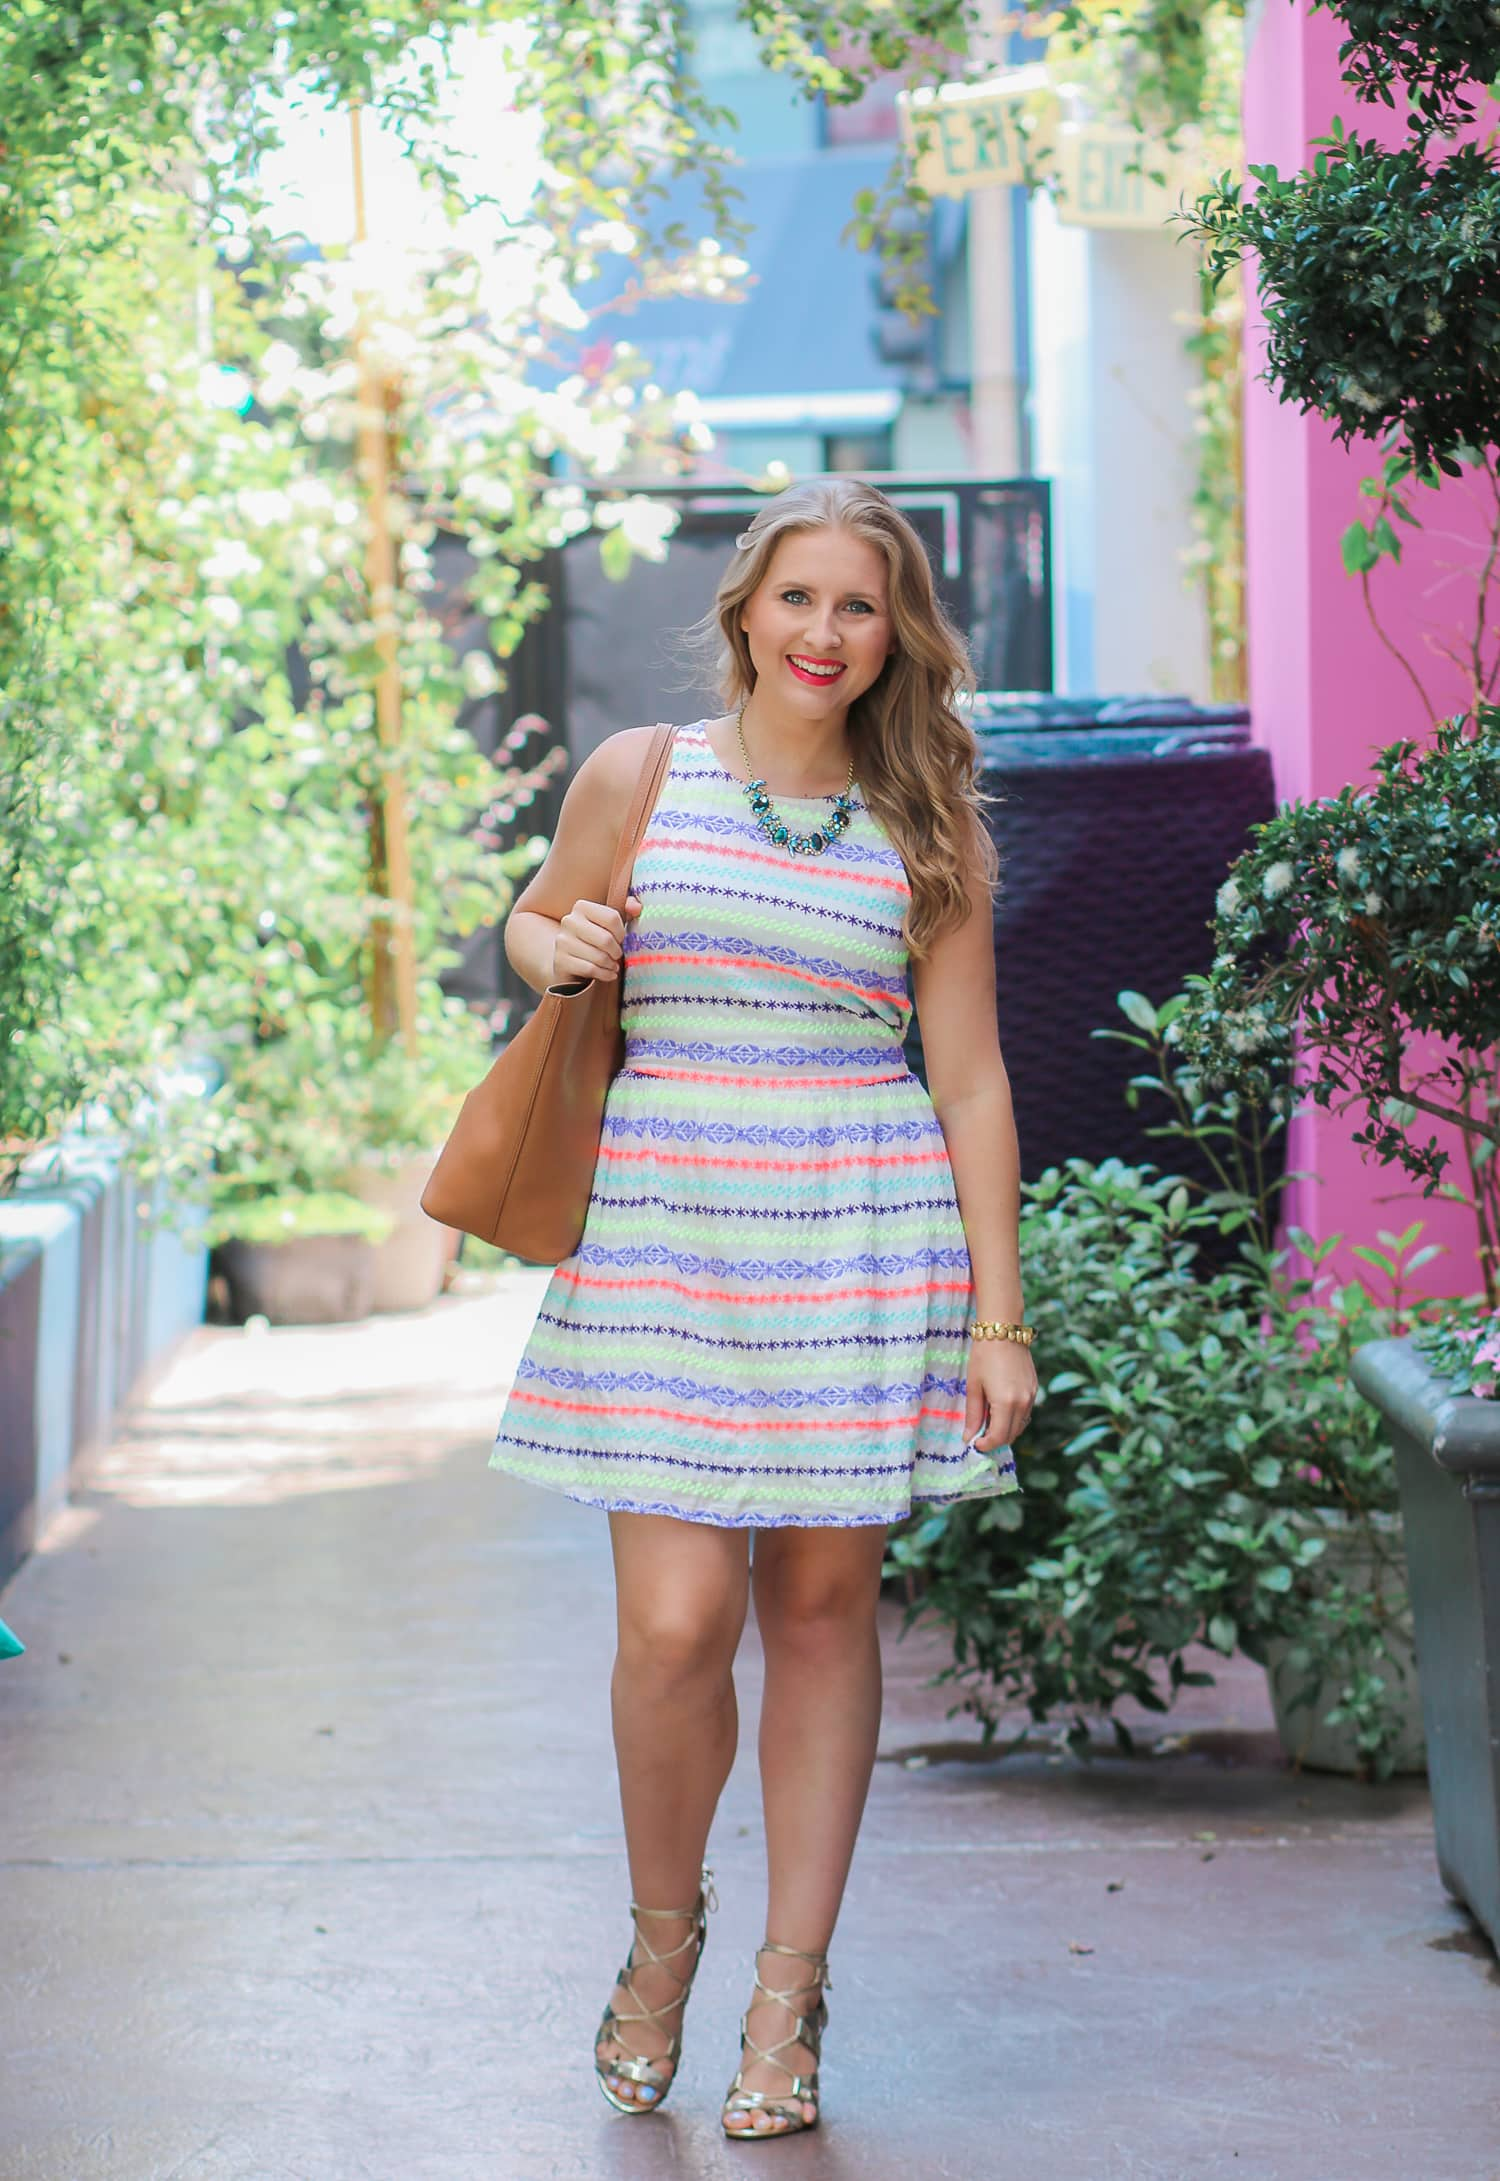 Looking for a cute summer dress that's flattering on a petite frame? Check out this neon striped fit-and-flare dress from the Target girls section. Even though it's a girls' item, it fits petite women who are a size 2-4 perfectly! See the dress styled by fashion blogger Ashley Brooke Nicholas in today's post at the beautiful Esterel restaurant at the Sofitel Los Angeles Beverly Hills hotel.